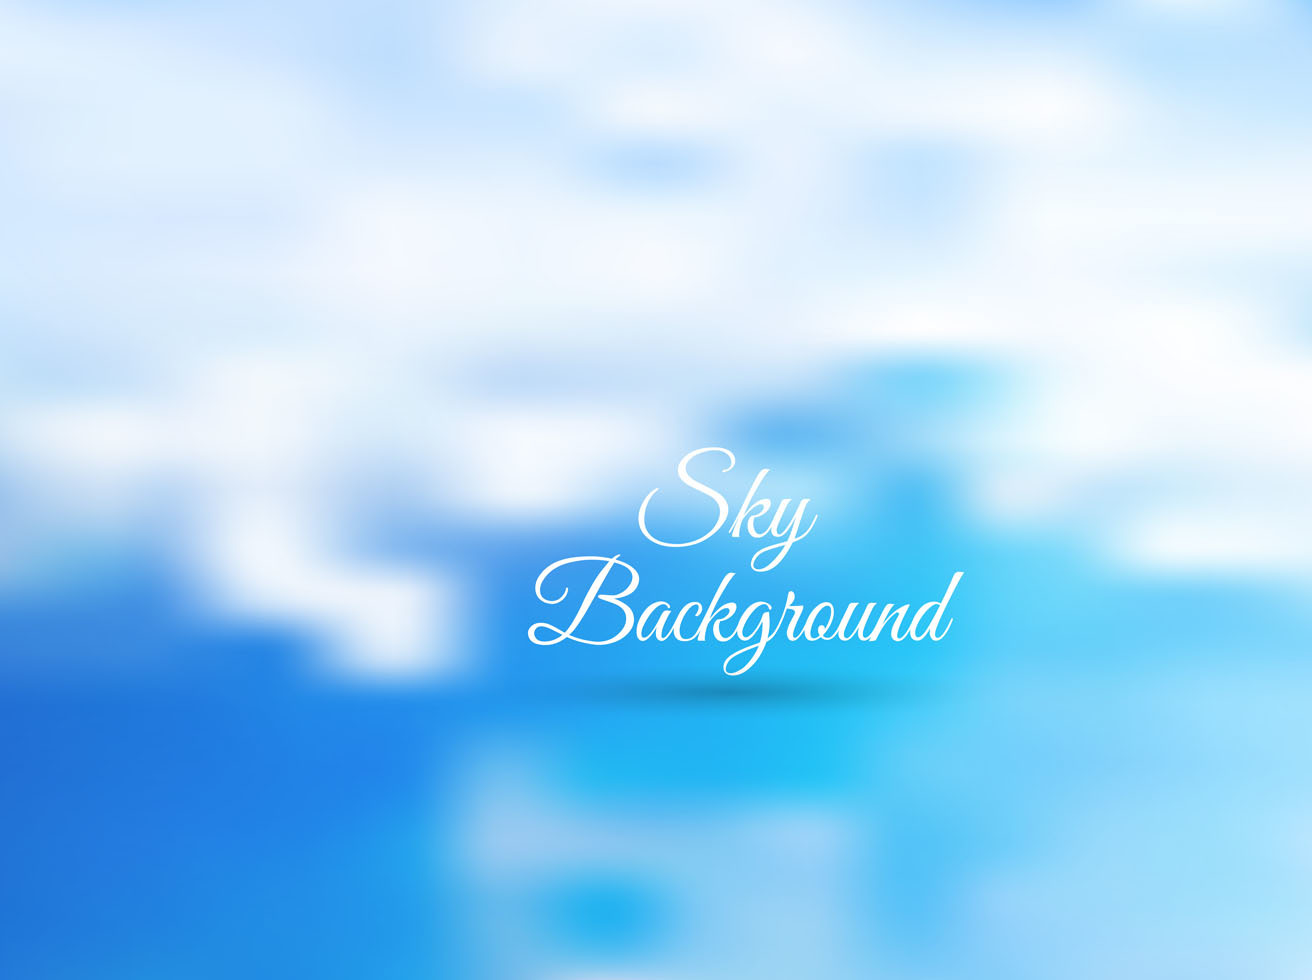 Free Vector Sky Background